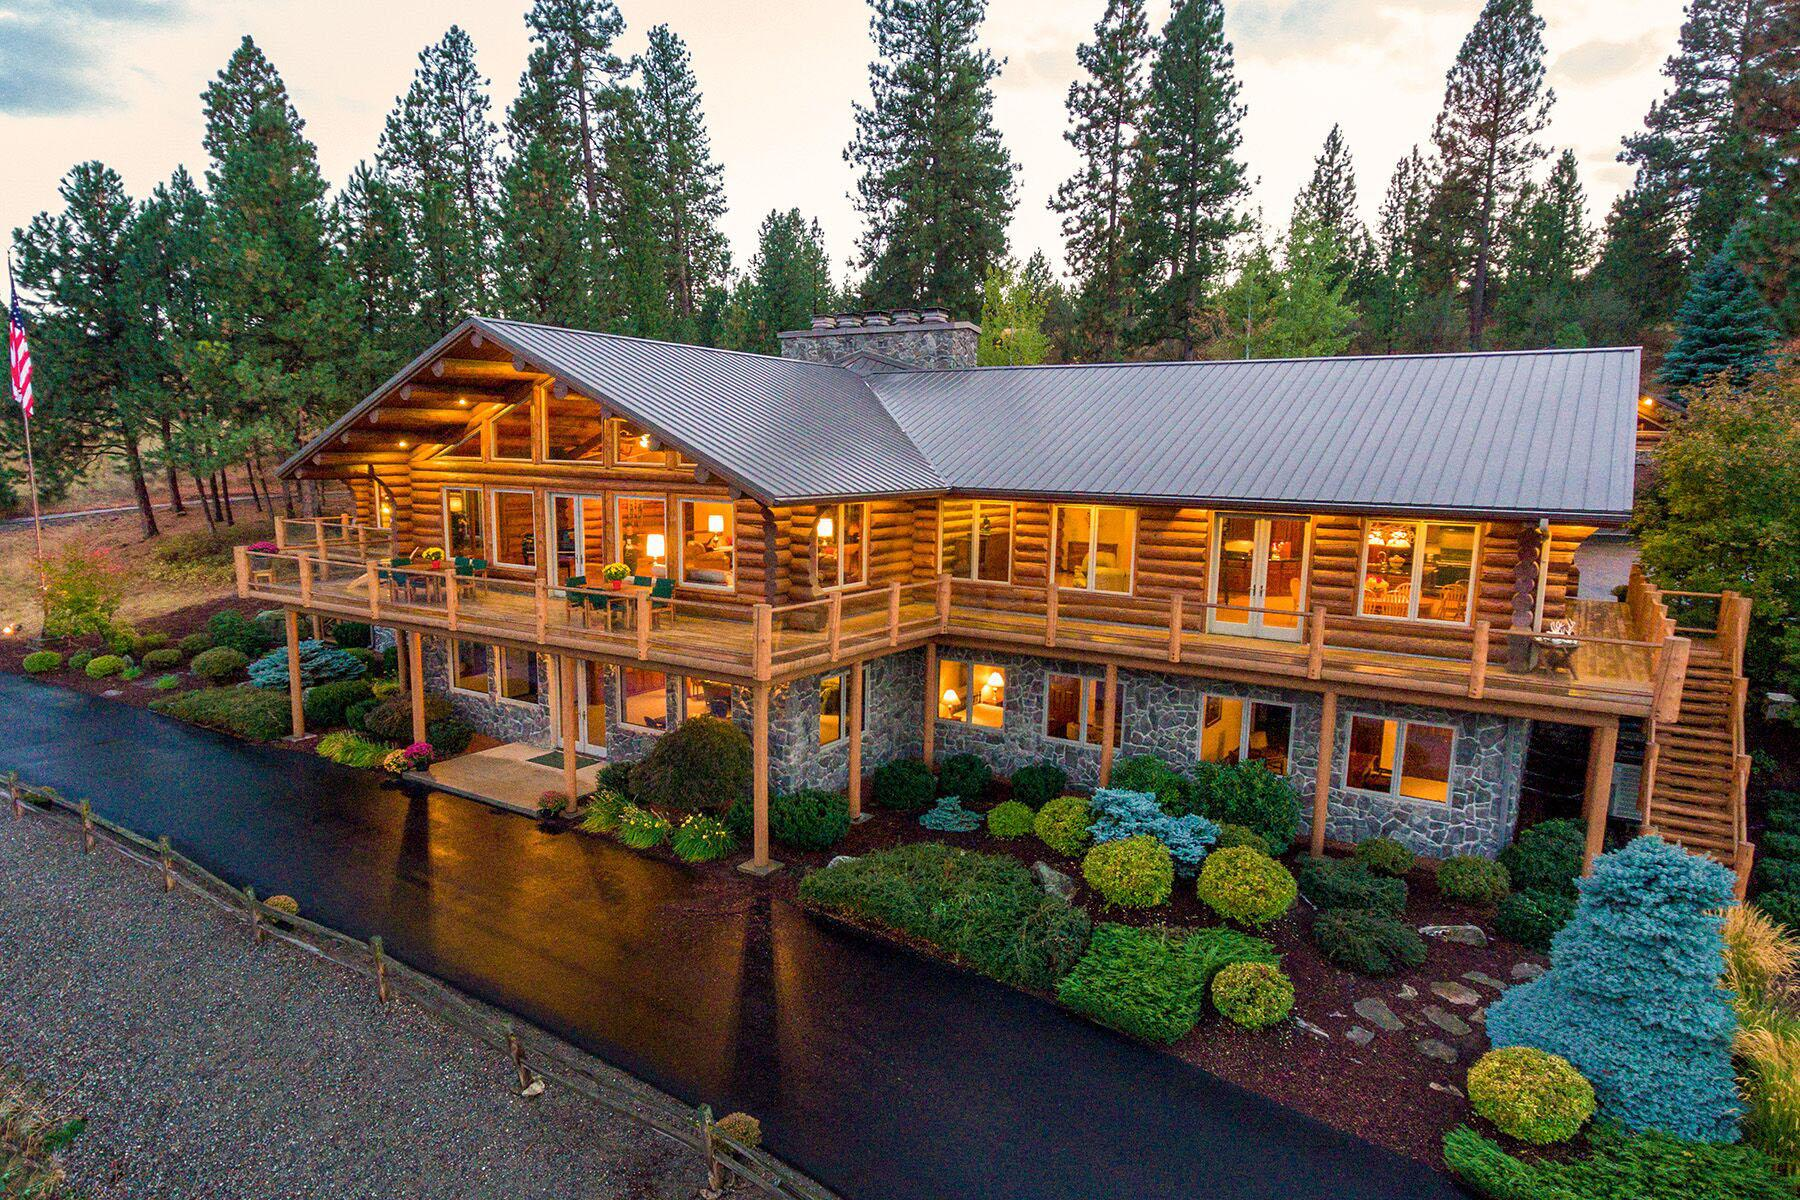 Greenacres luxury ranch the spokesman review for Luxury ranch